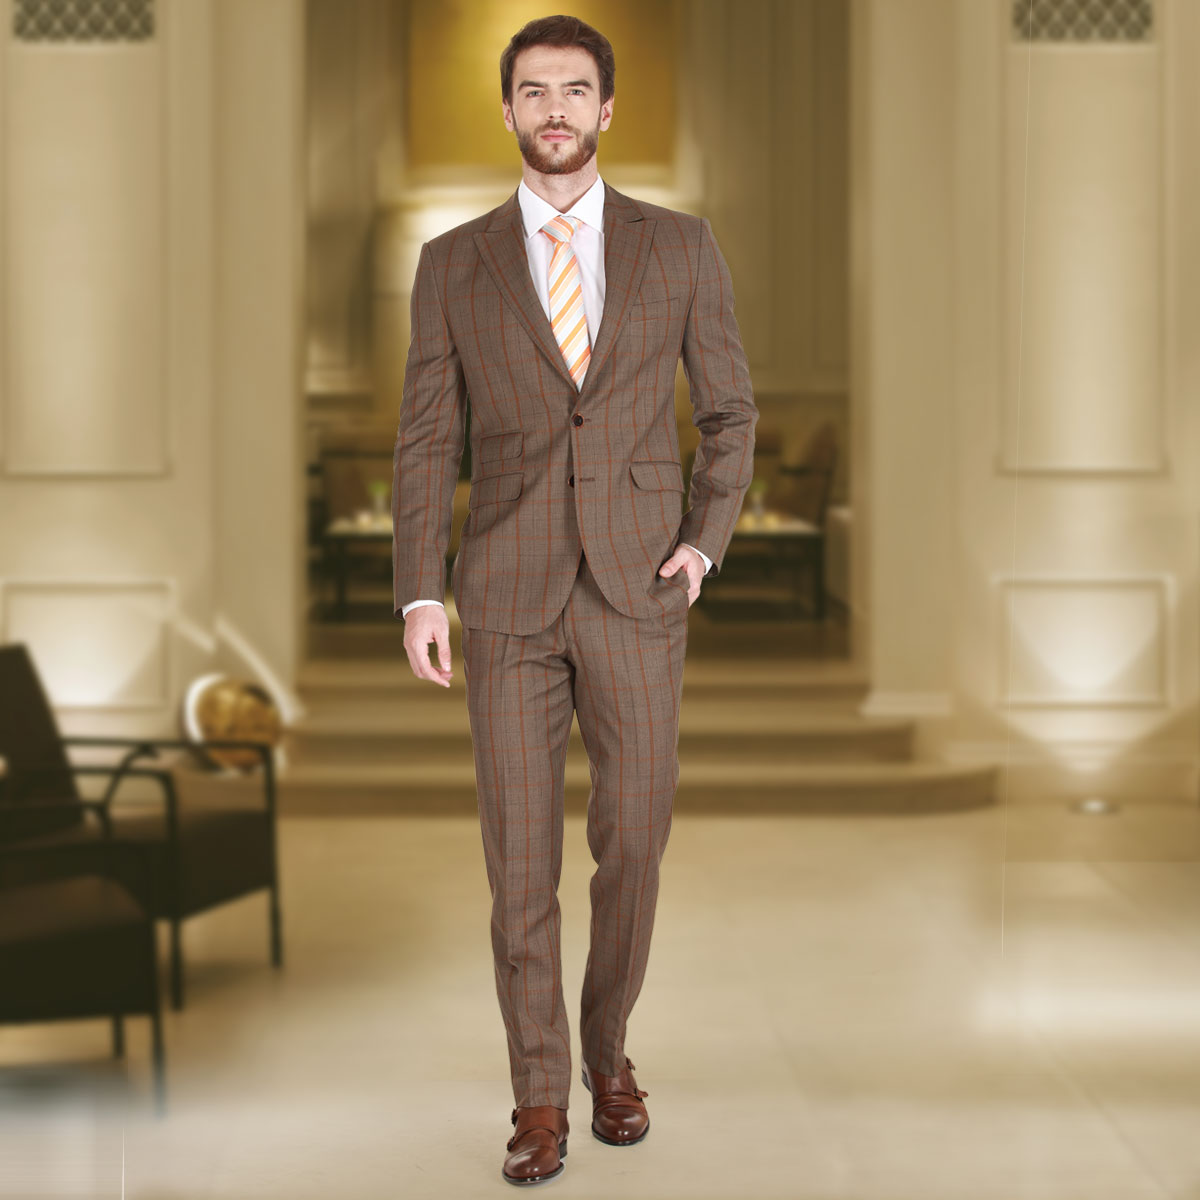 BROWN SUITS for men best men suit stores, best custom tailored suits, best bespoke suits,  custom tailored YDTAGAH